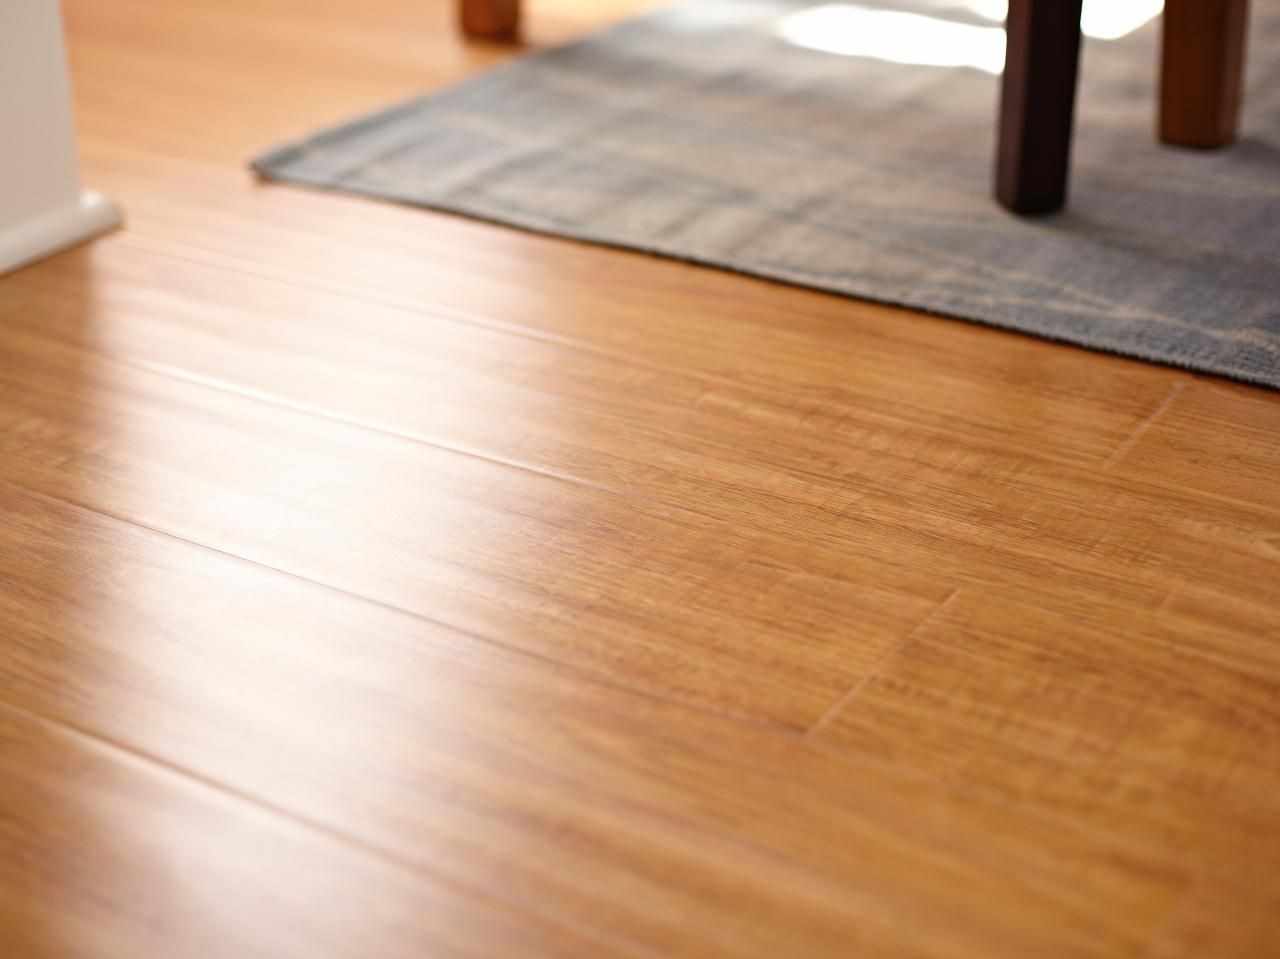 How To Keep Laminate Floors Clean And Shiny